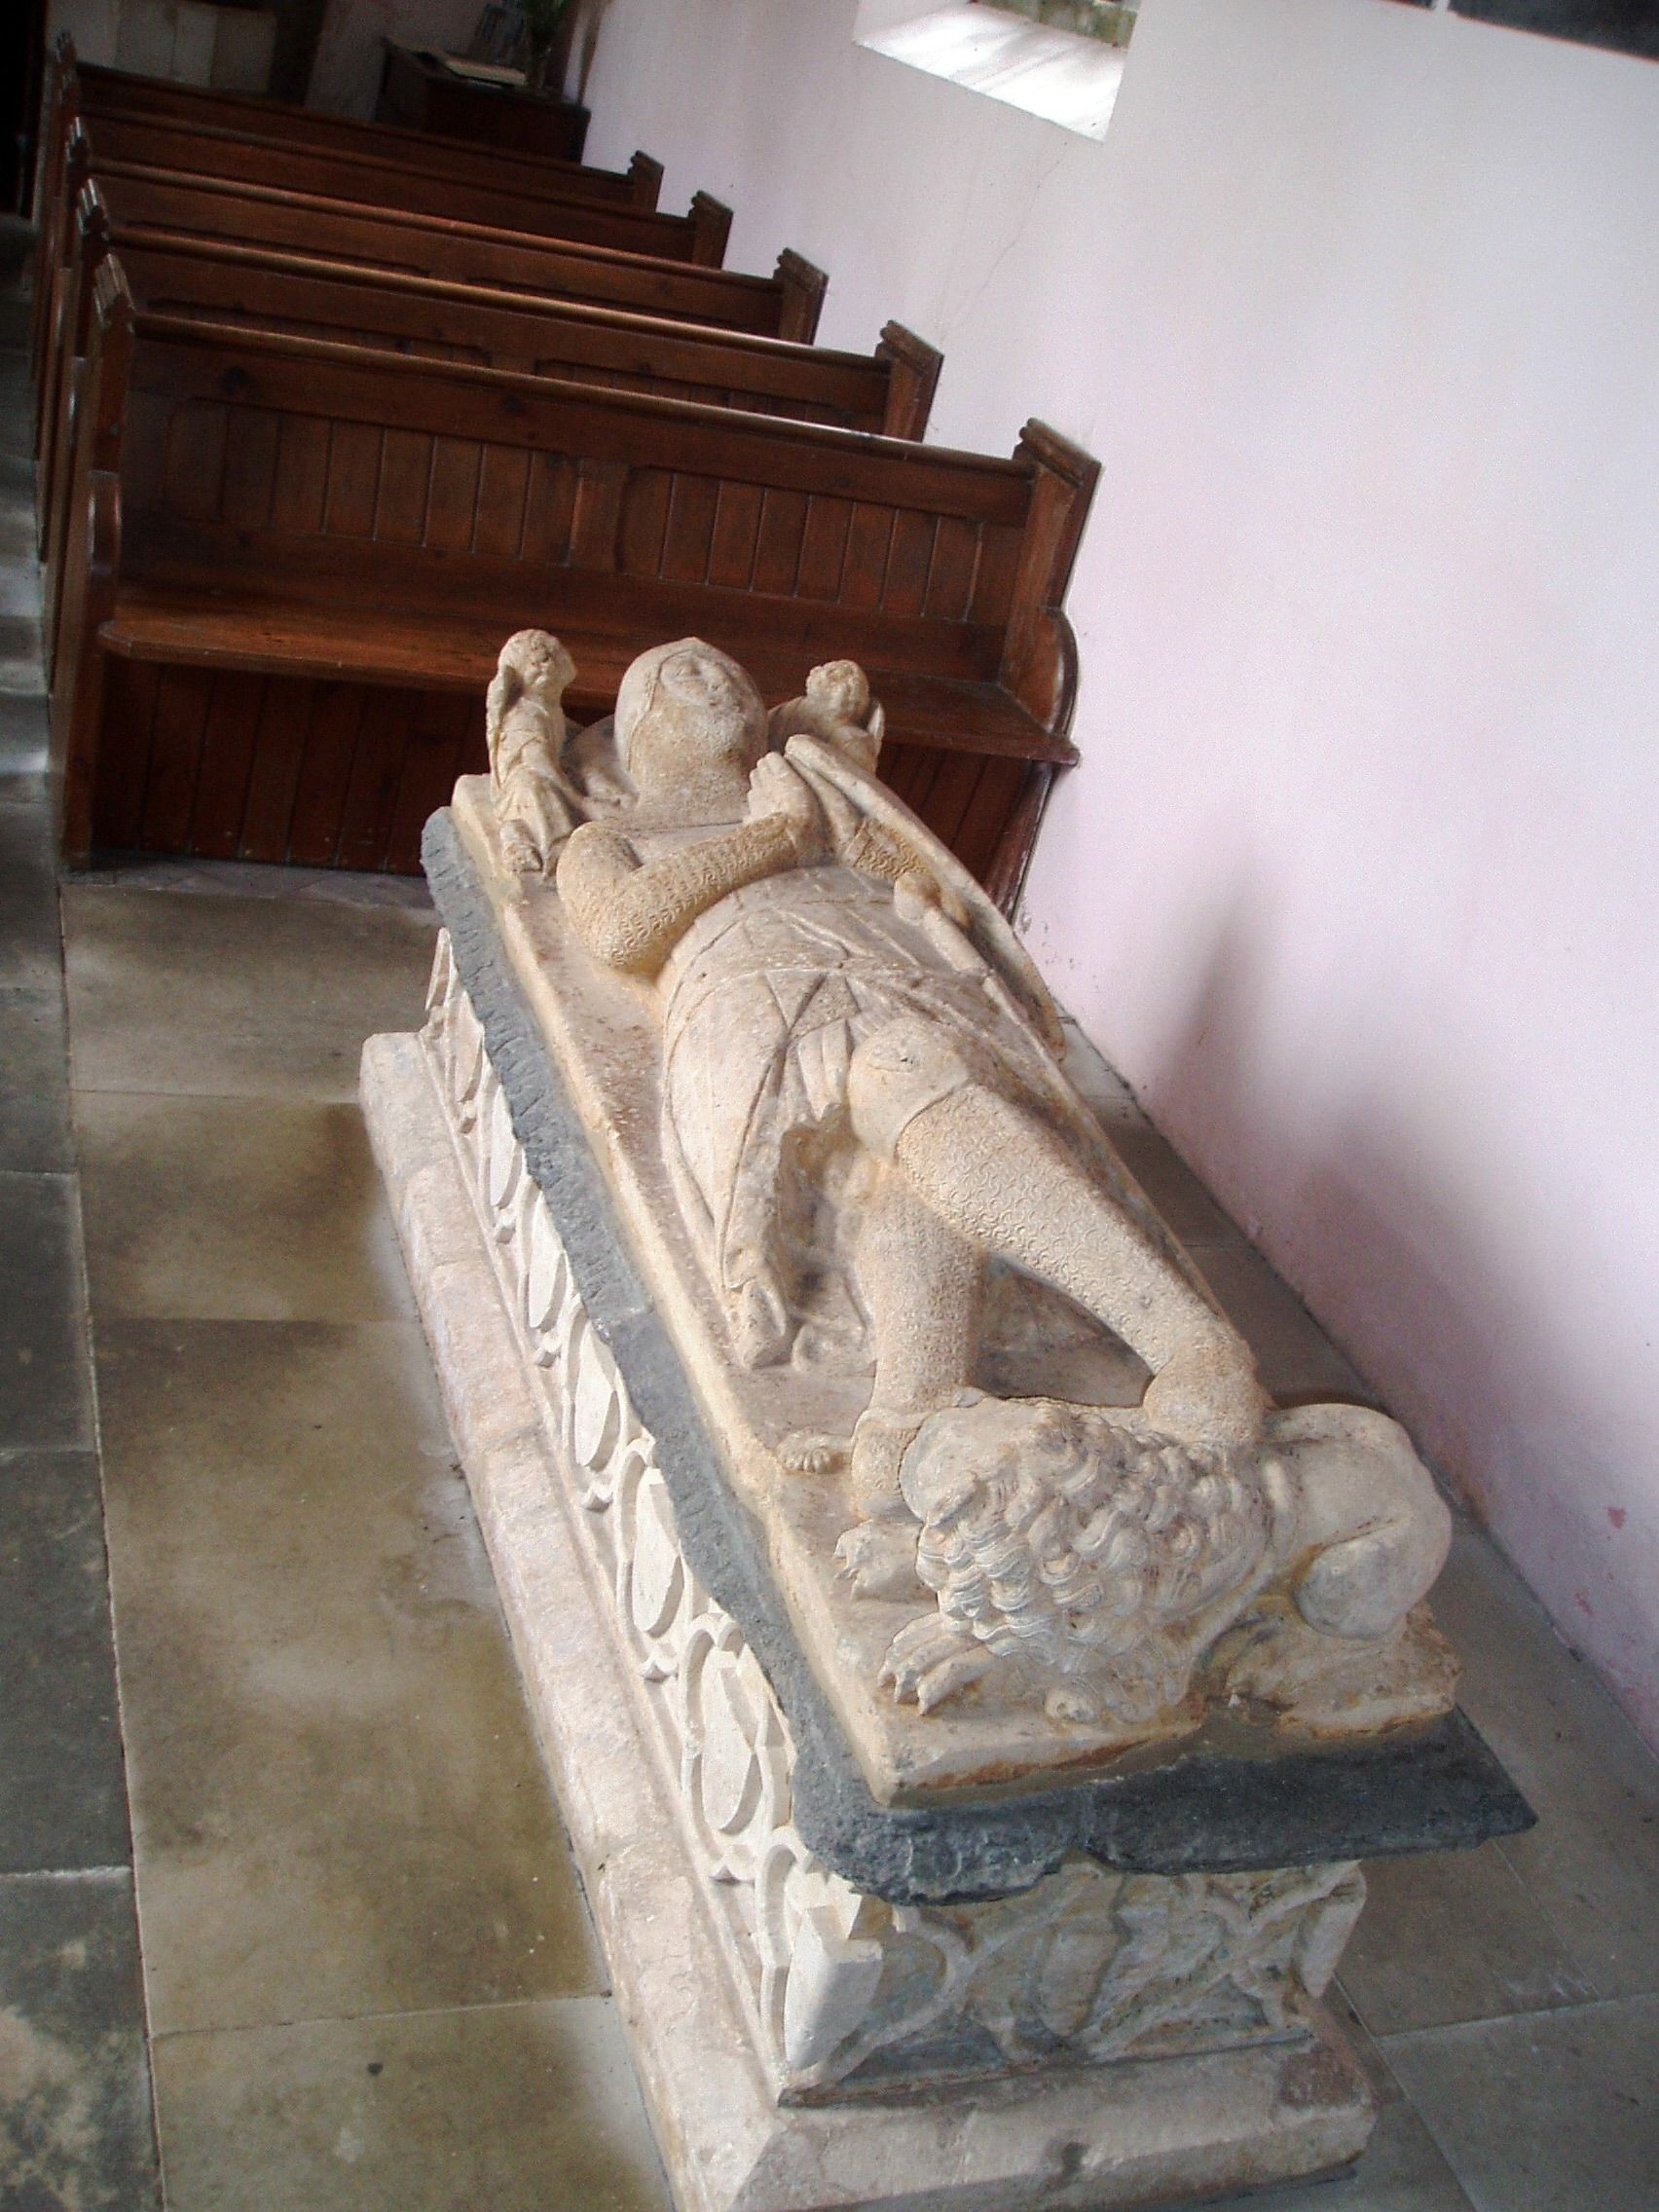 Tomb Of Knight Templar In Buslingthorpes Church Lincolnshire